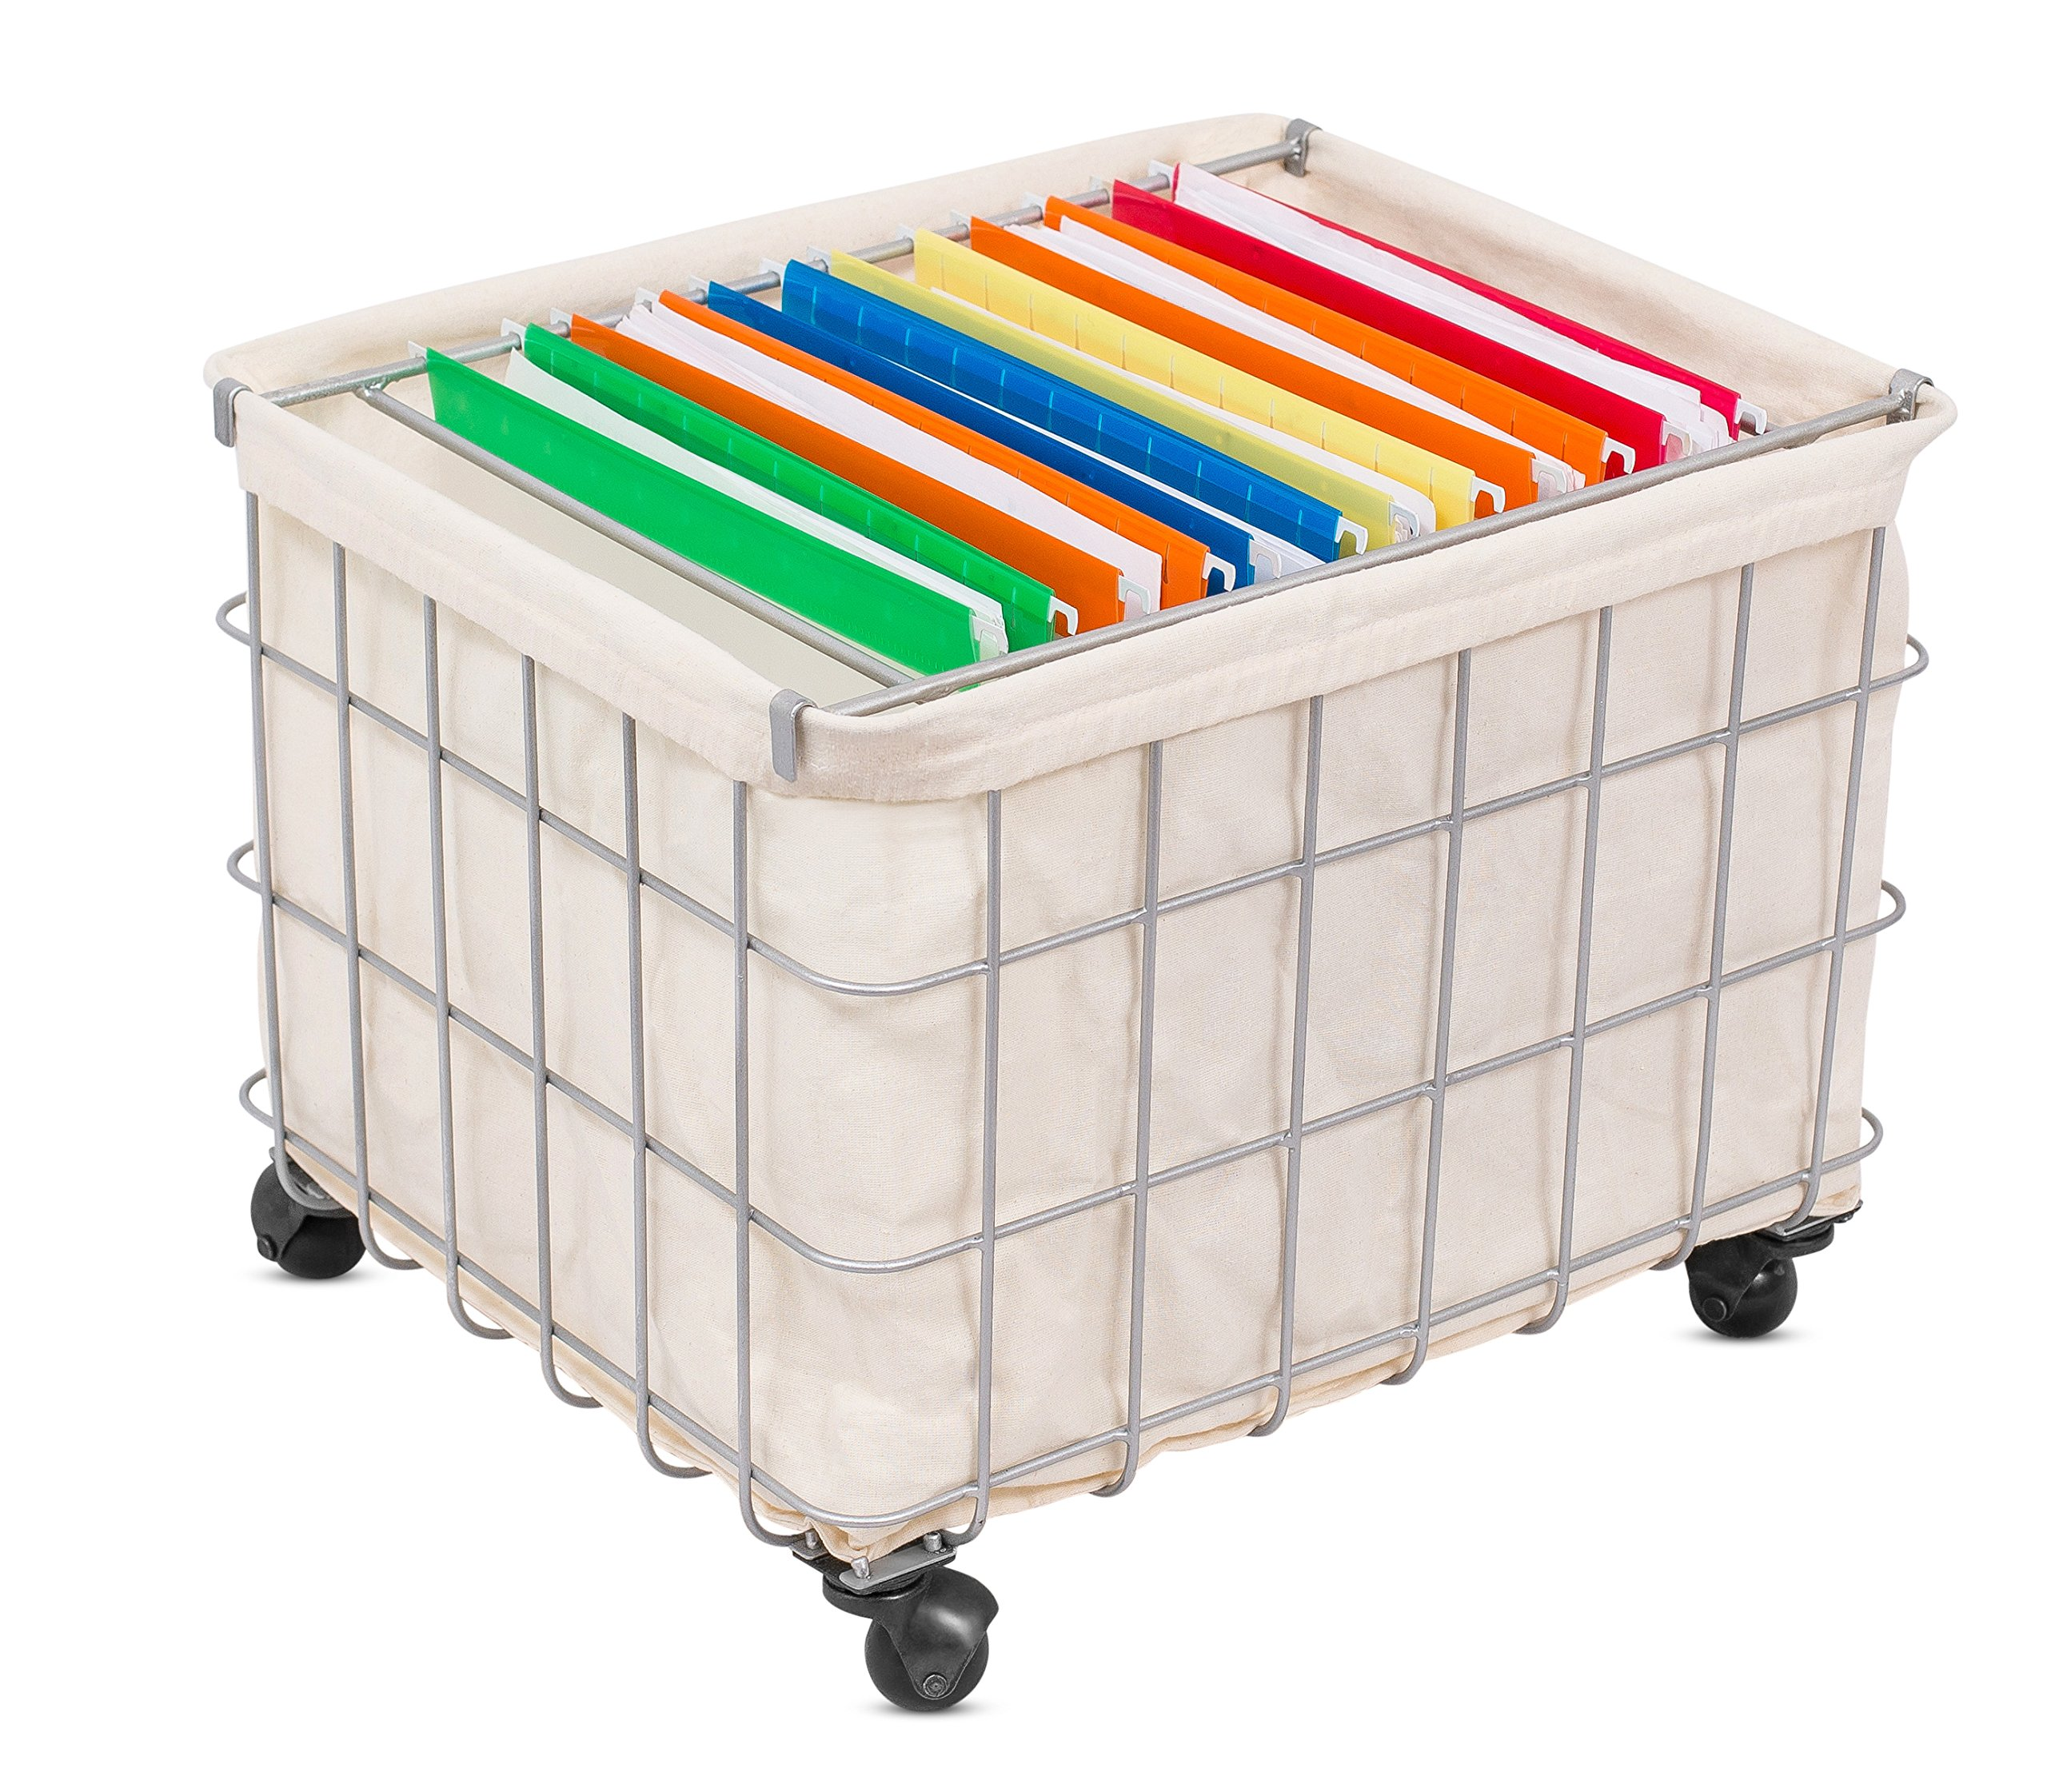 BirdRock Home Metal Wire Rolling File Cabinet with Linen Liner | Blanket Toy Magazine Storage | Home Office Decor | Hanging Files